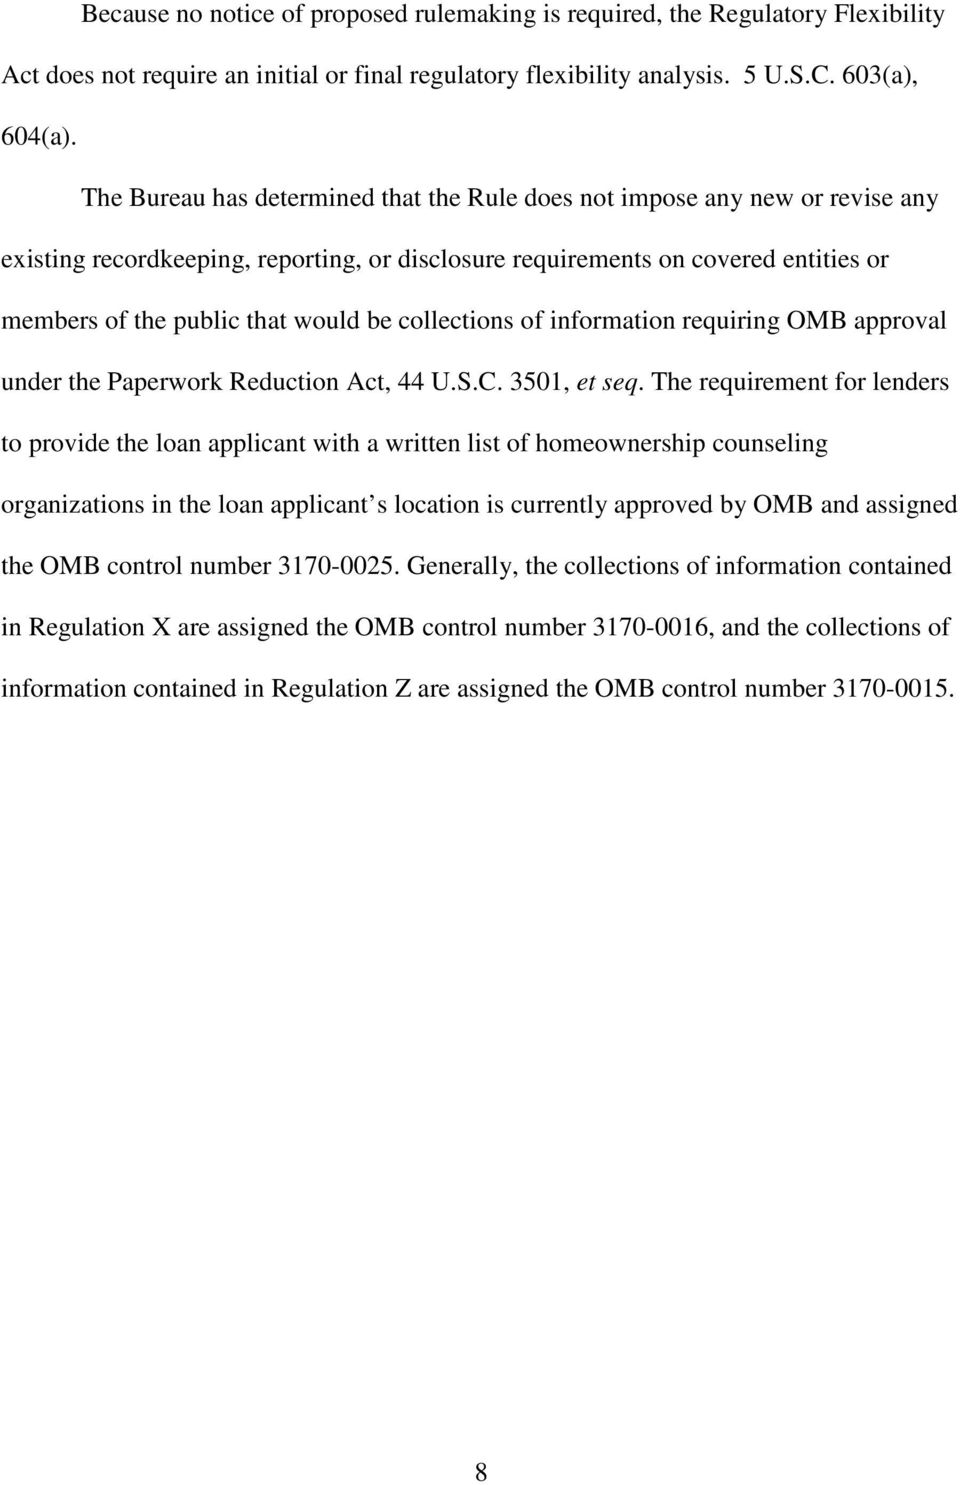 collections of information requiring OMB approval under the Paperwork Reduction Act, 44 U.S.C. 3501, et seq.